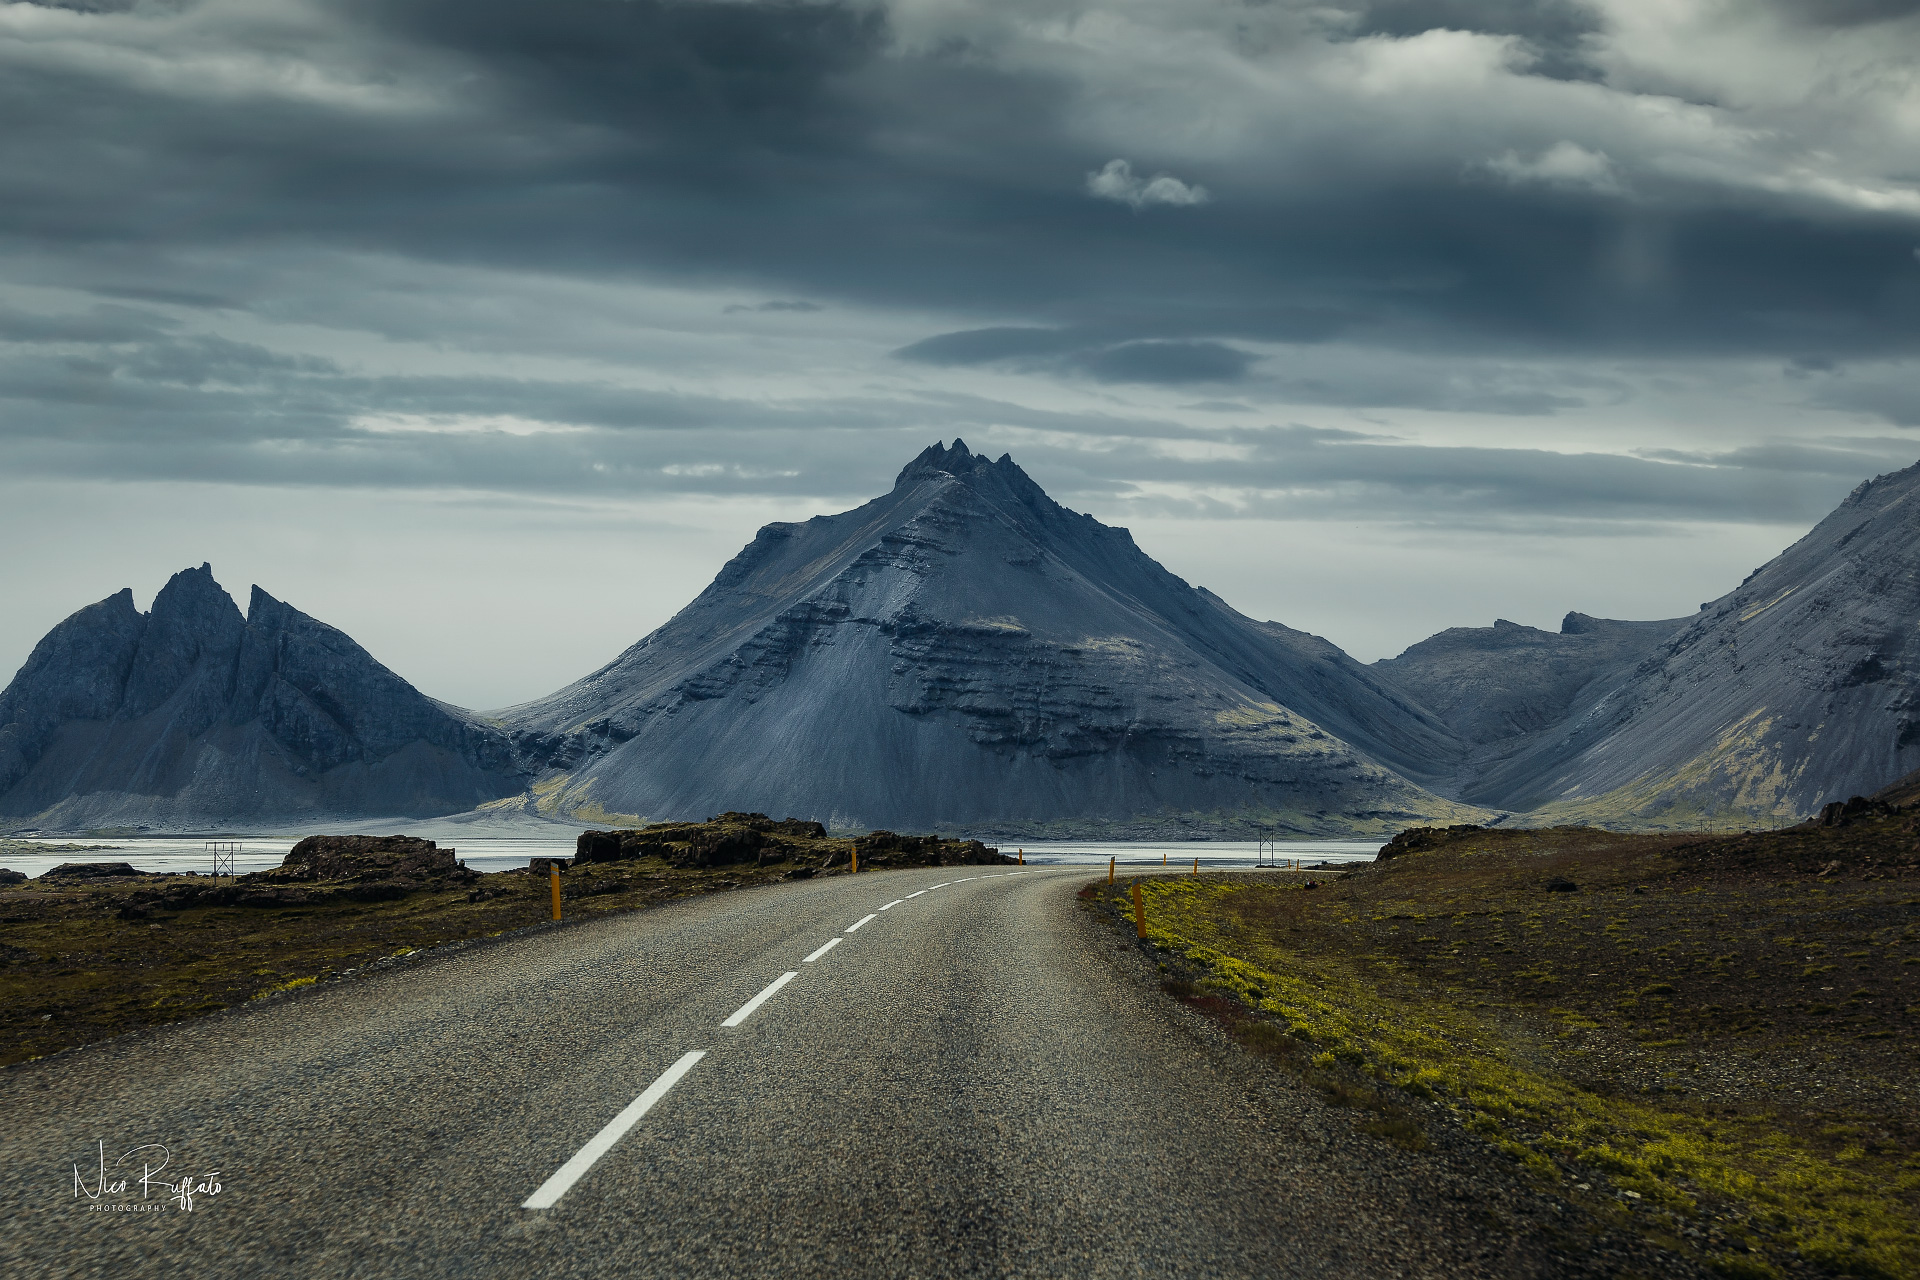 Categorie: Landscape & Nature, Reportage; Photographer:NICO RUFFATO; Location: Iceland